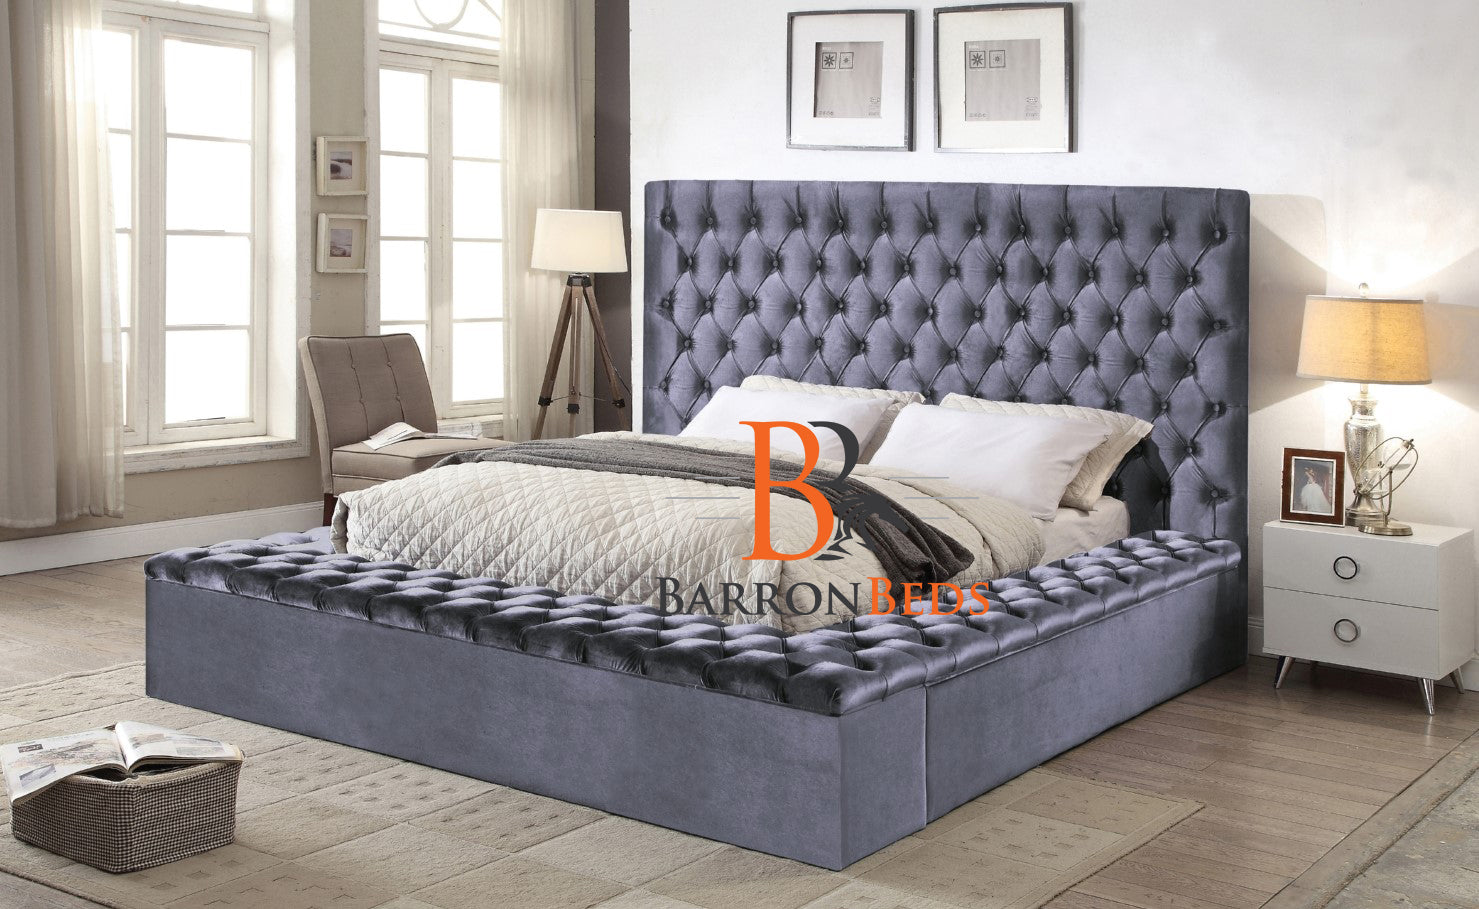 Isabelle Ambassador Storage Bed Frame A Barronbeds Exclusive